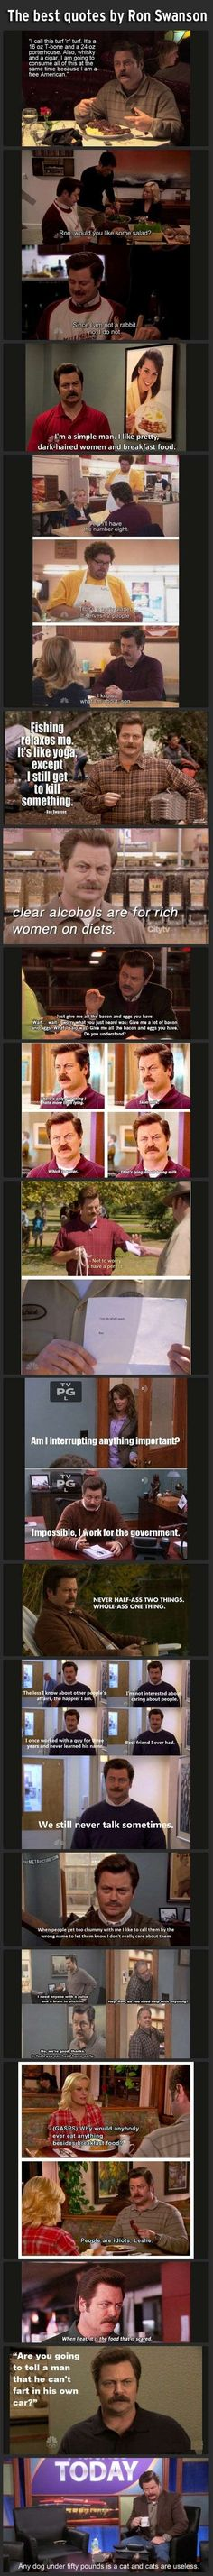 this man, laugh, ron swanson, park, quotes, funny pictures, funni, humor, thing